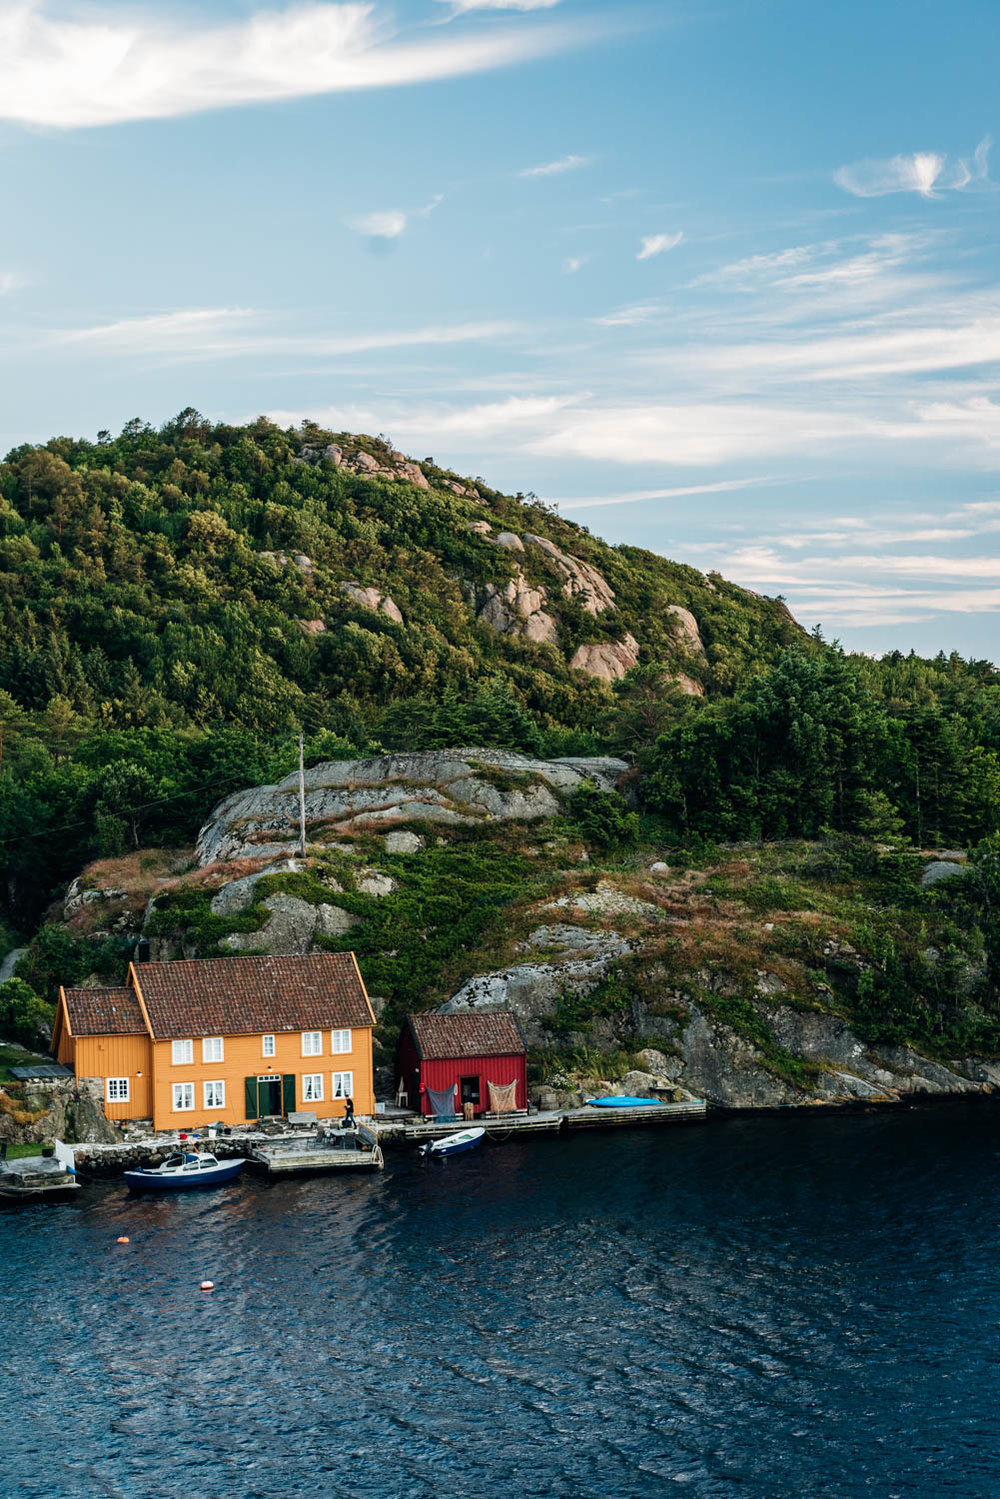 gustav-thuesen-photographer-bikepacking-norway-scandinavia-fine-art-6.jpg